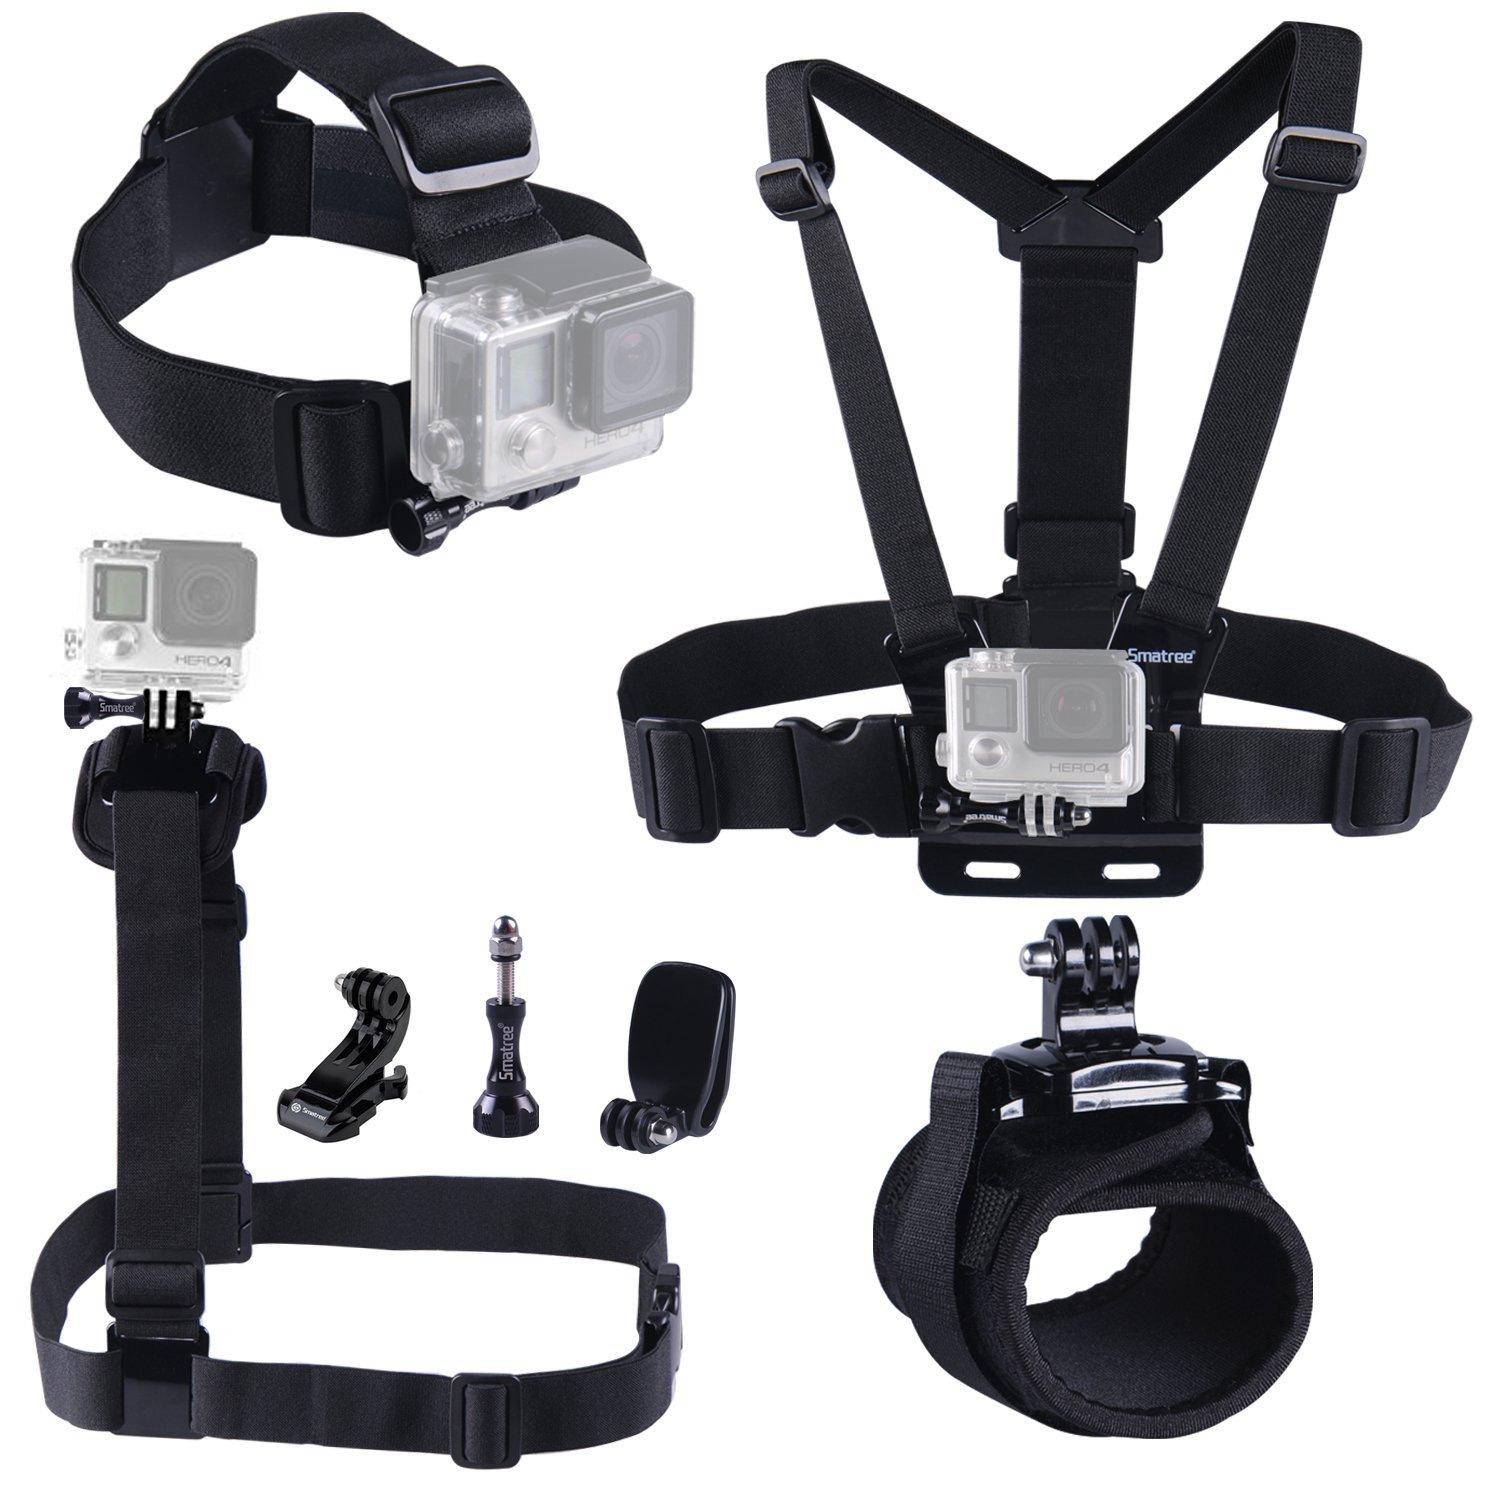 Smatree® 7-in-1 Gopro Accessories Kit